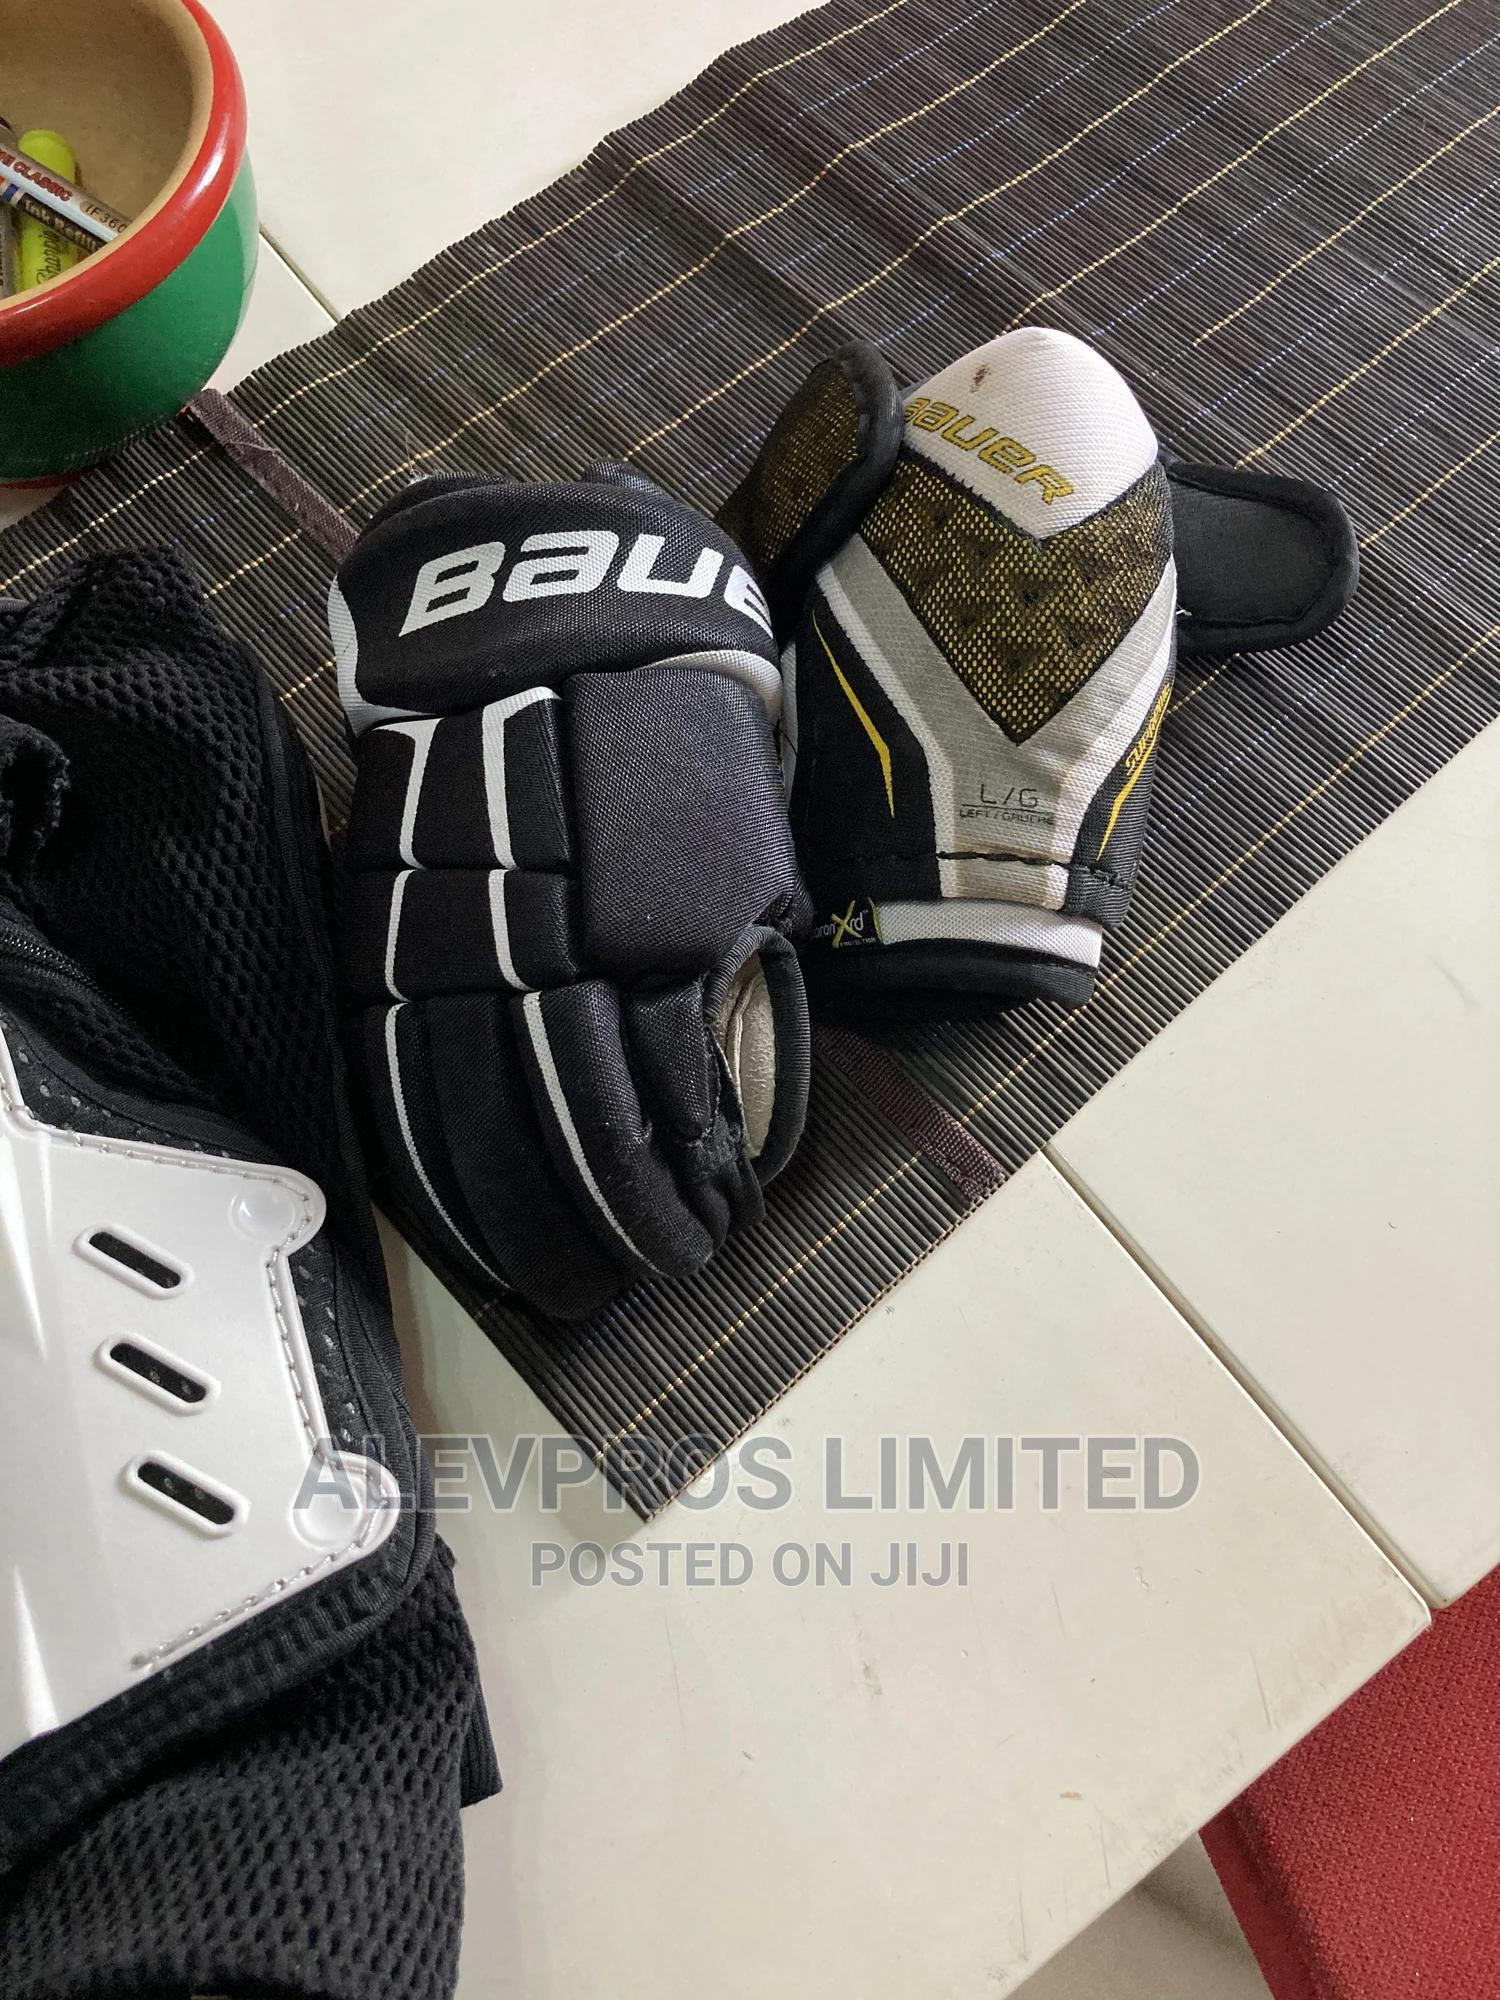 Sports Protective Gears   Sports Equipment for sale in Amuwo-Odofin, Lagos State, Nigeria